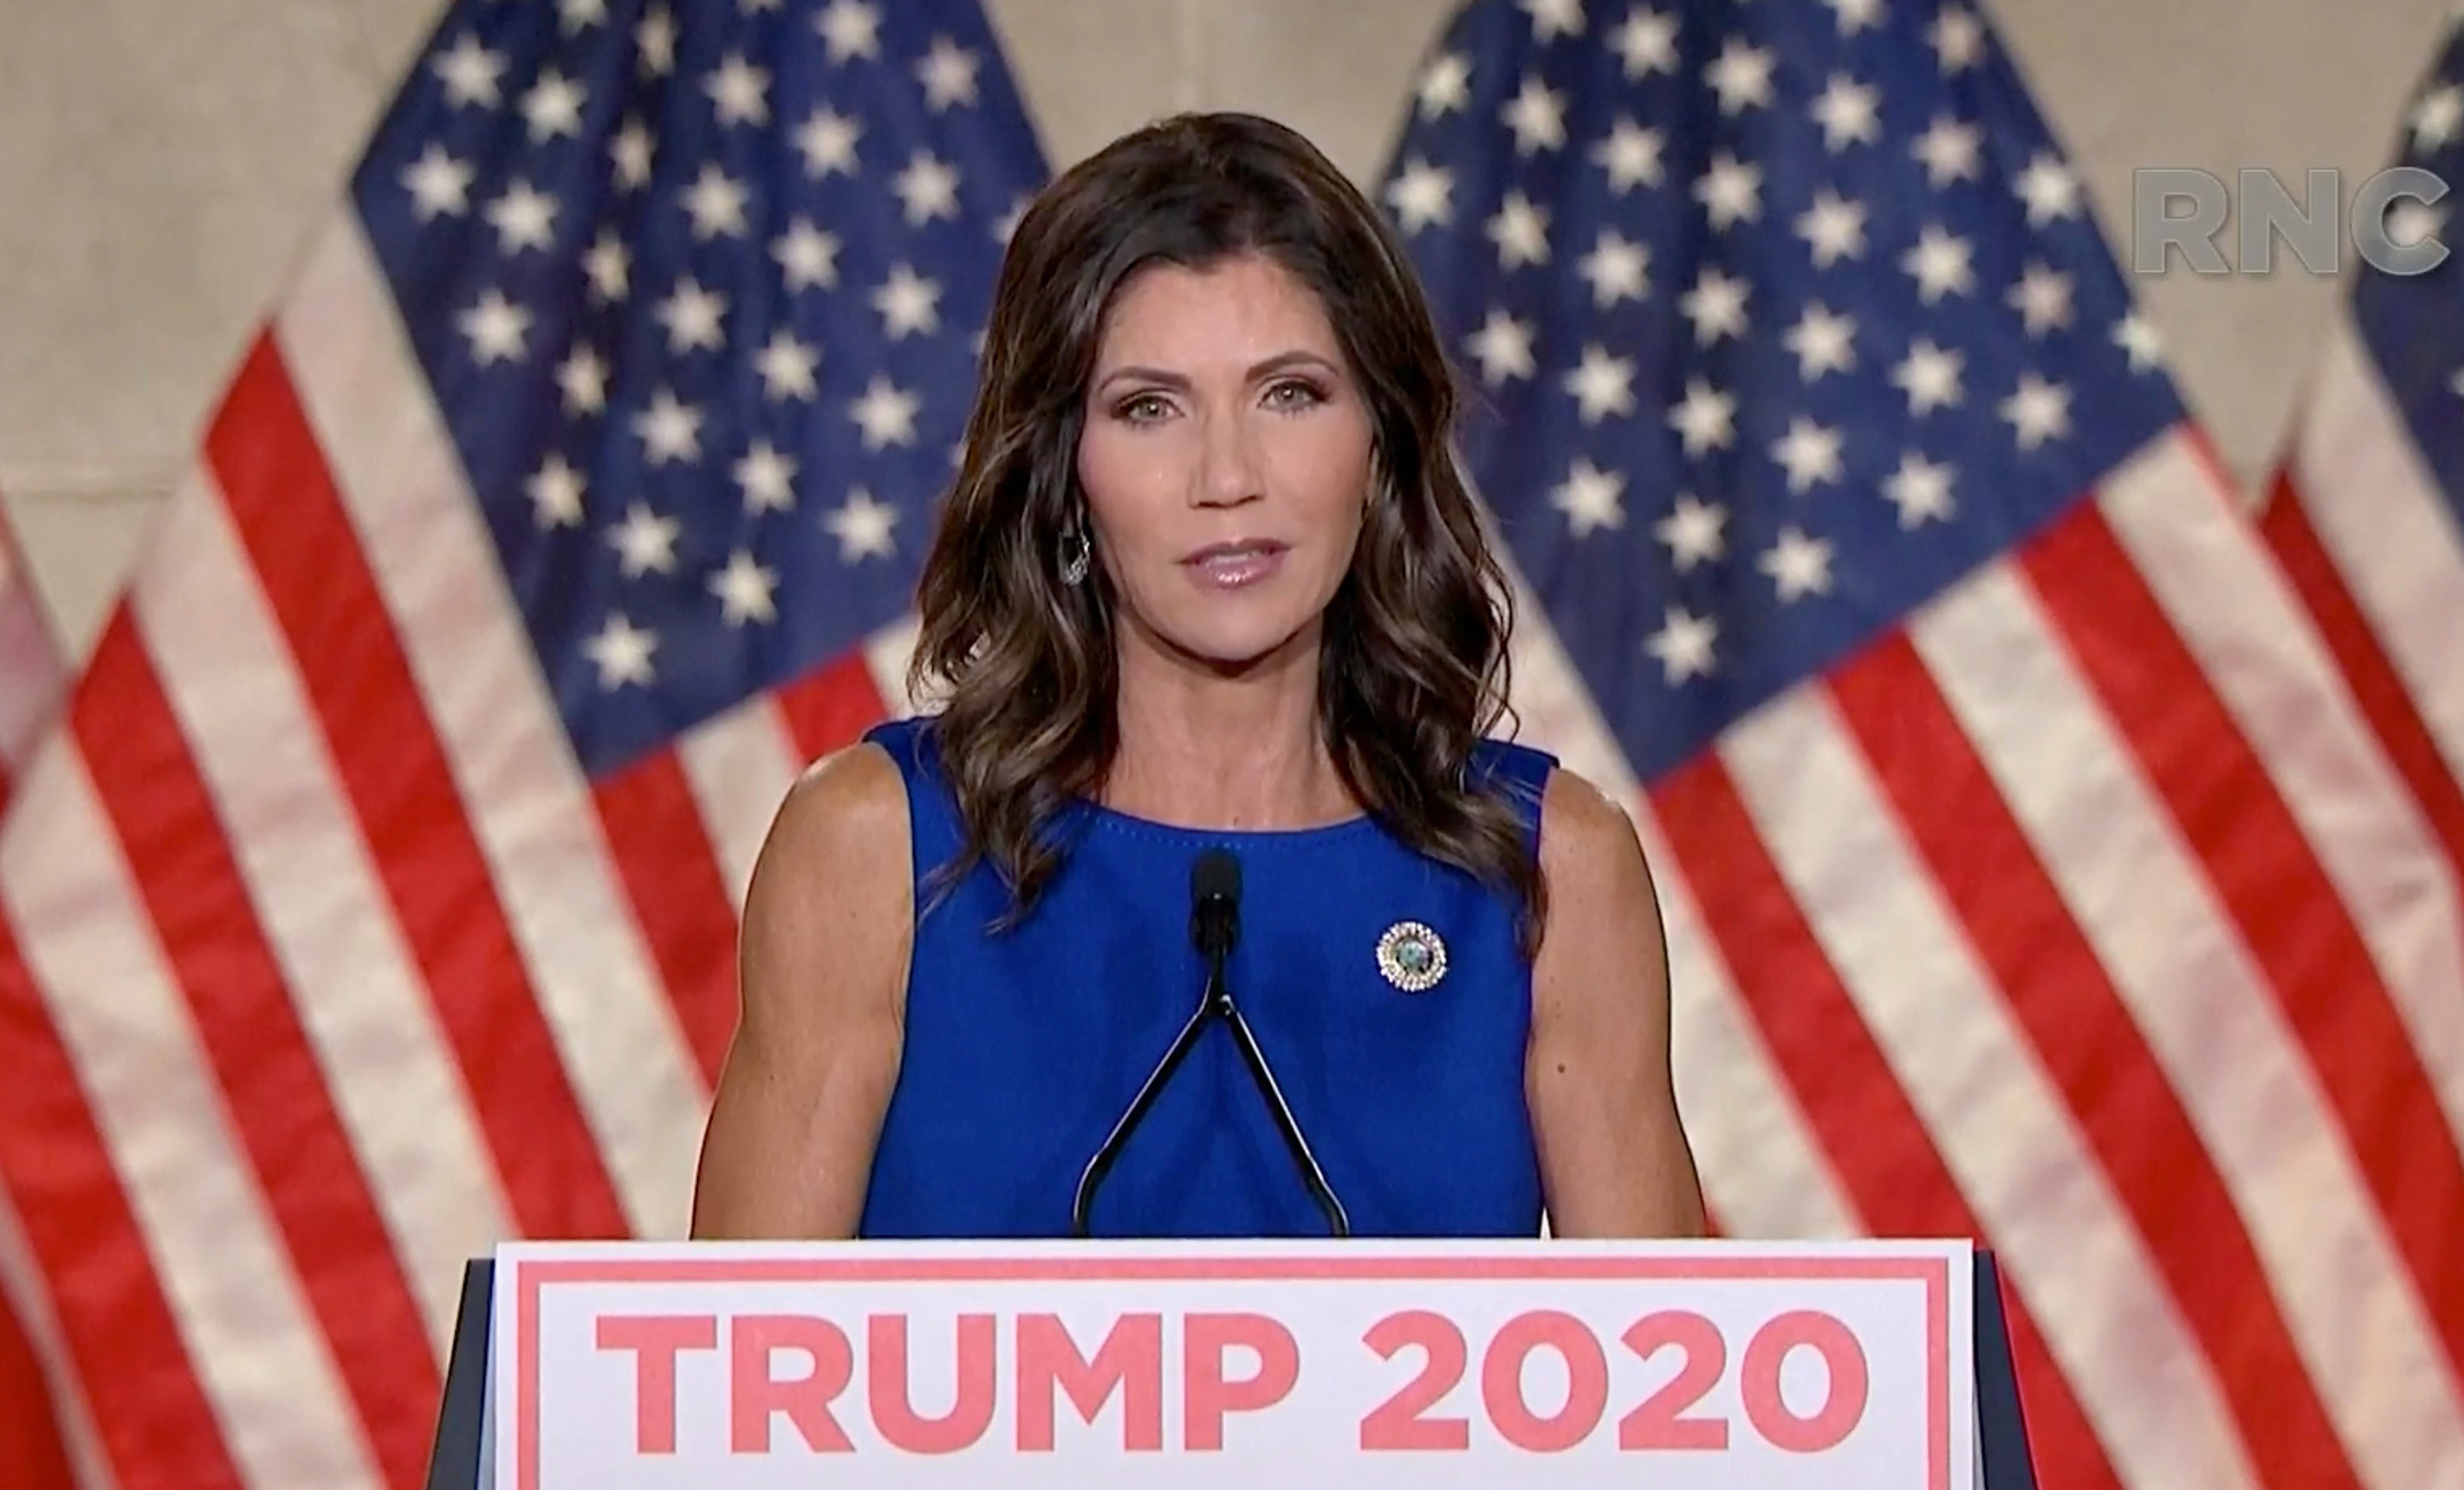 Kristi speaking at the Republican National Convention in 2020